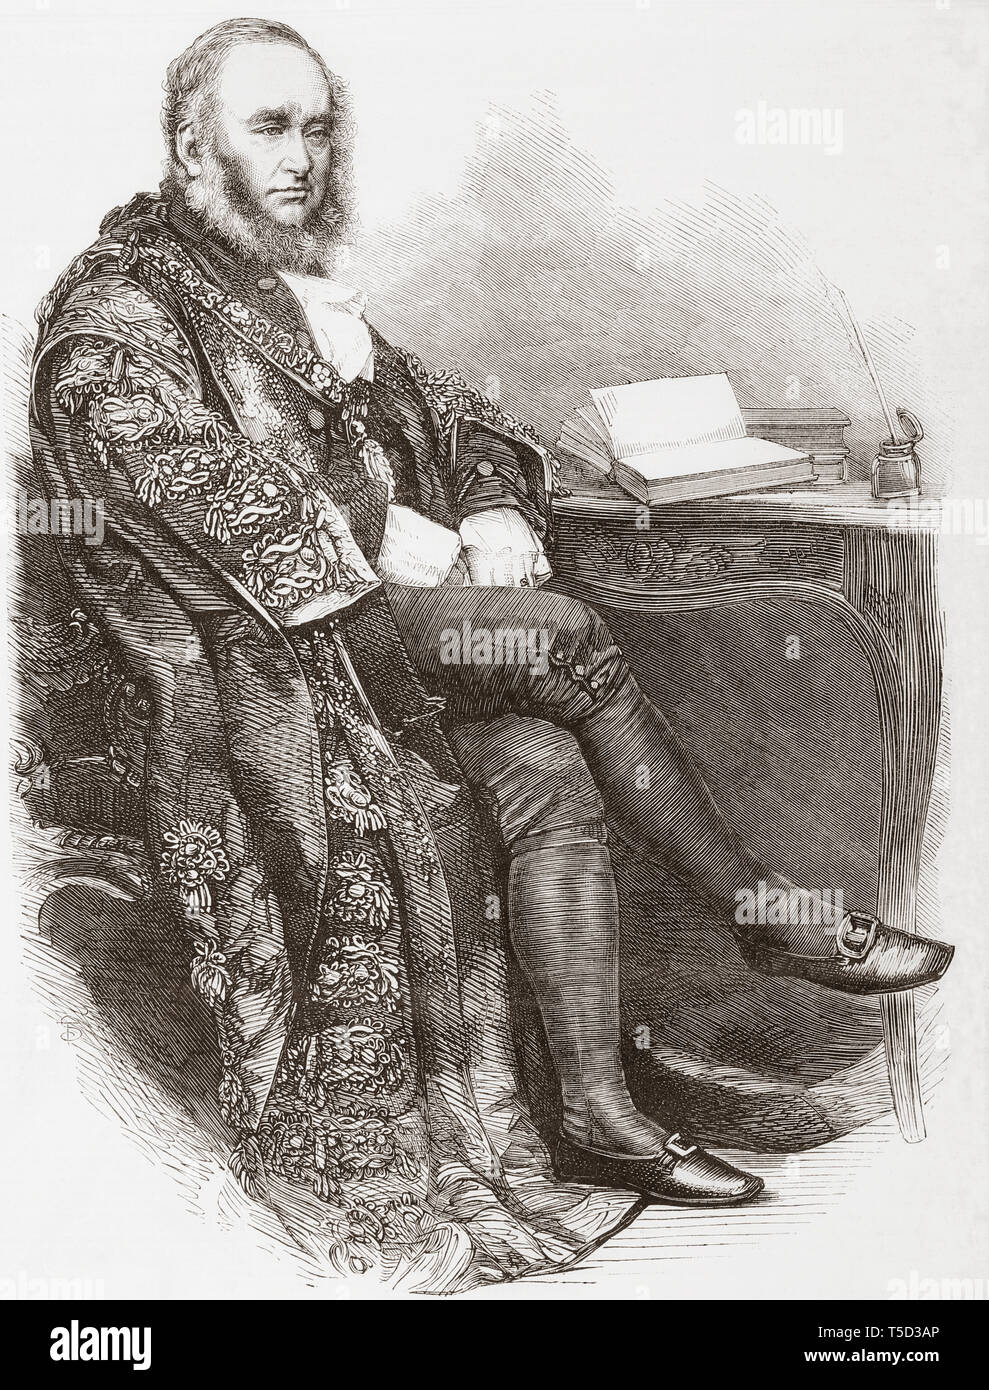 Sir Benjamin Samuel Faudel-Phillips, 2nd Baronet, 1871–1927.  Lord mayor of London in the 19th century.  From The Illustrated London News, published 1865. - Stock Image